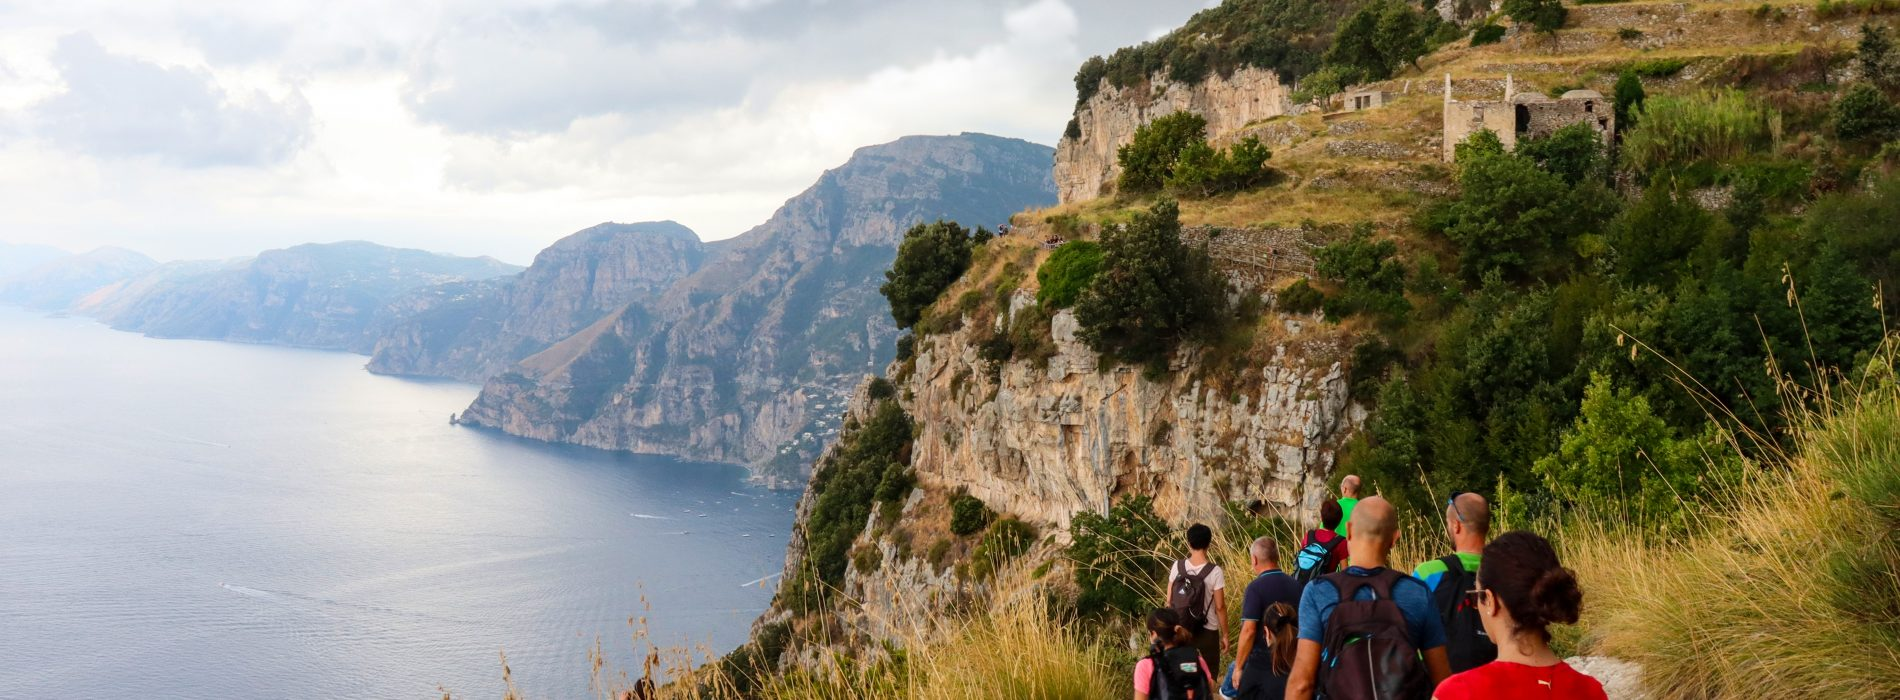 Path of God from Sorrento